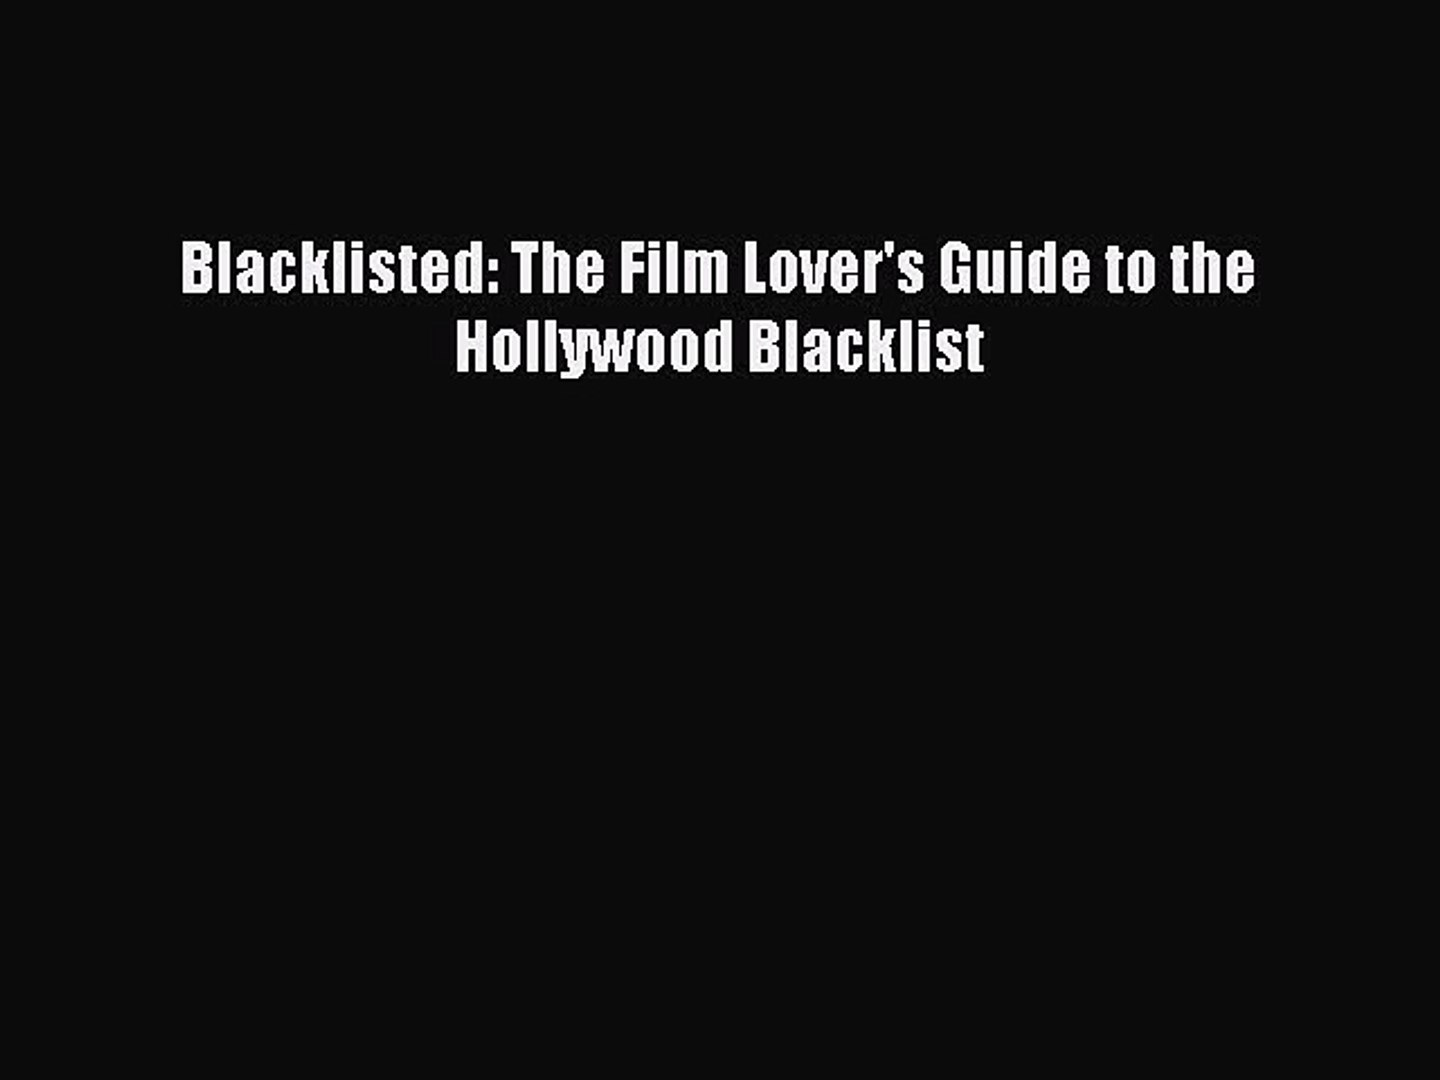 [Read book] Blacklisted: The Film Lover's Guide to the Hollywood Blacklist [PDF] Online